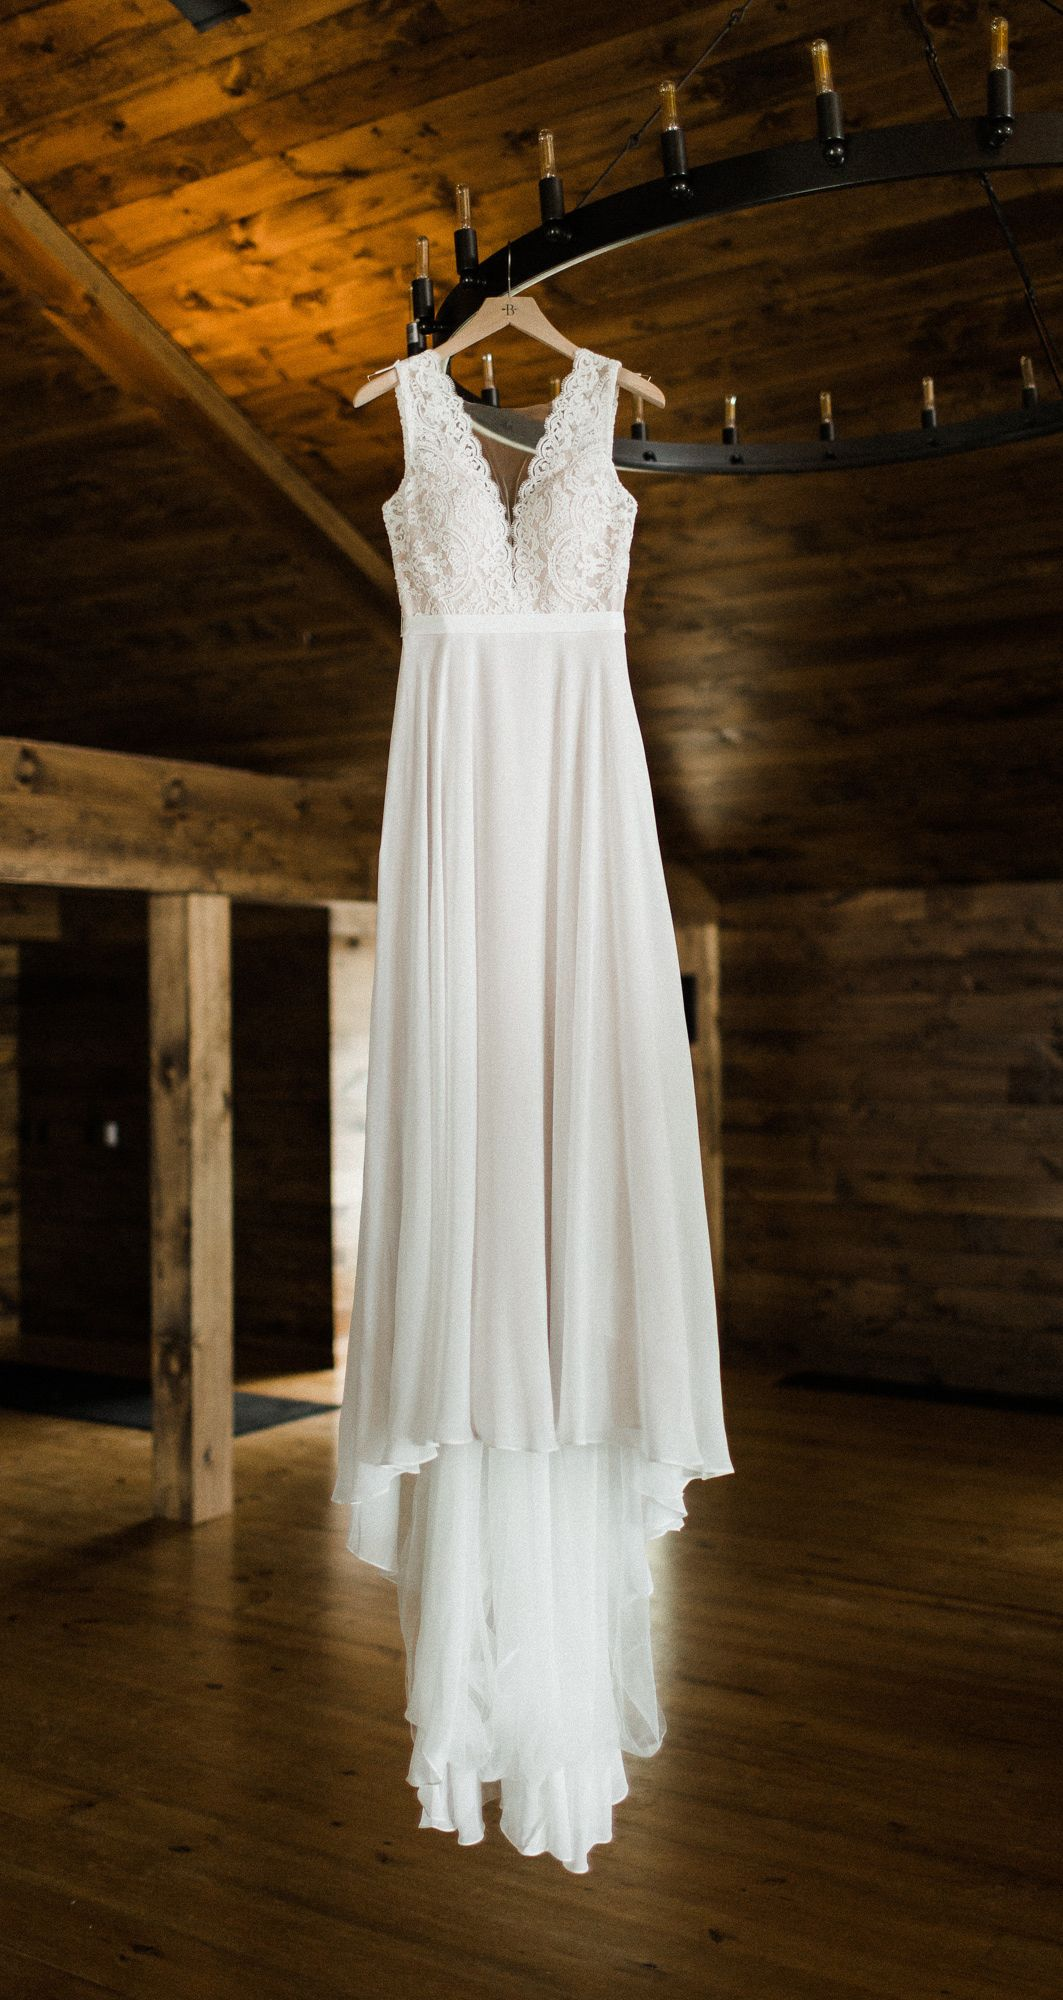 A-line Sheer Round Neckline Lace Chiffon Beach Wedding Dress OW581 #lacechiffon